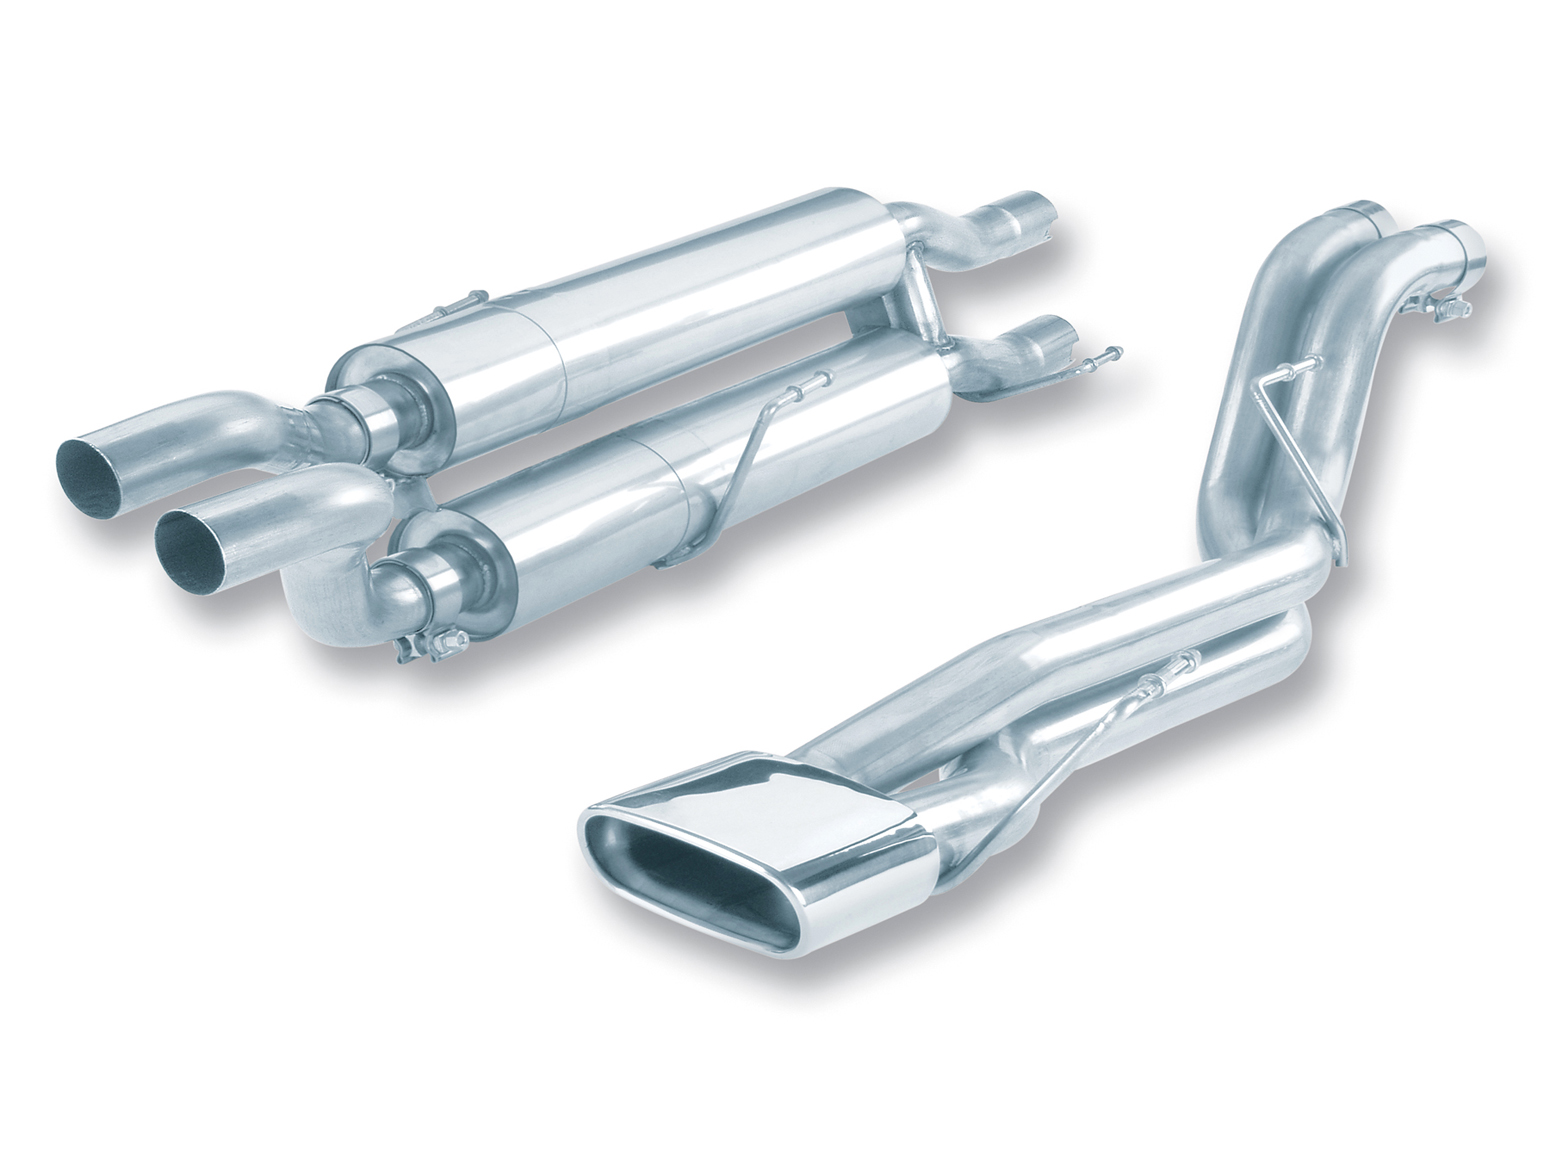 "Dodge Ram SRT-10 8.3l V10 2004-2005 Borla 2.5"" Cat-Back Exhaust System - Single Rectangle Rolled Angle-Cut Tips"